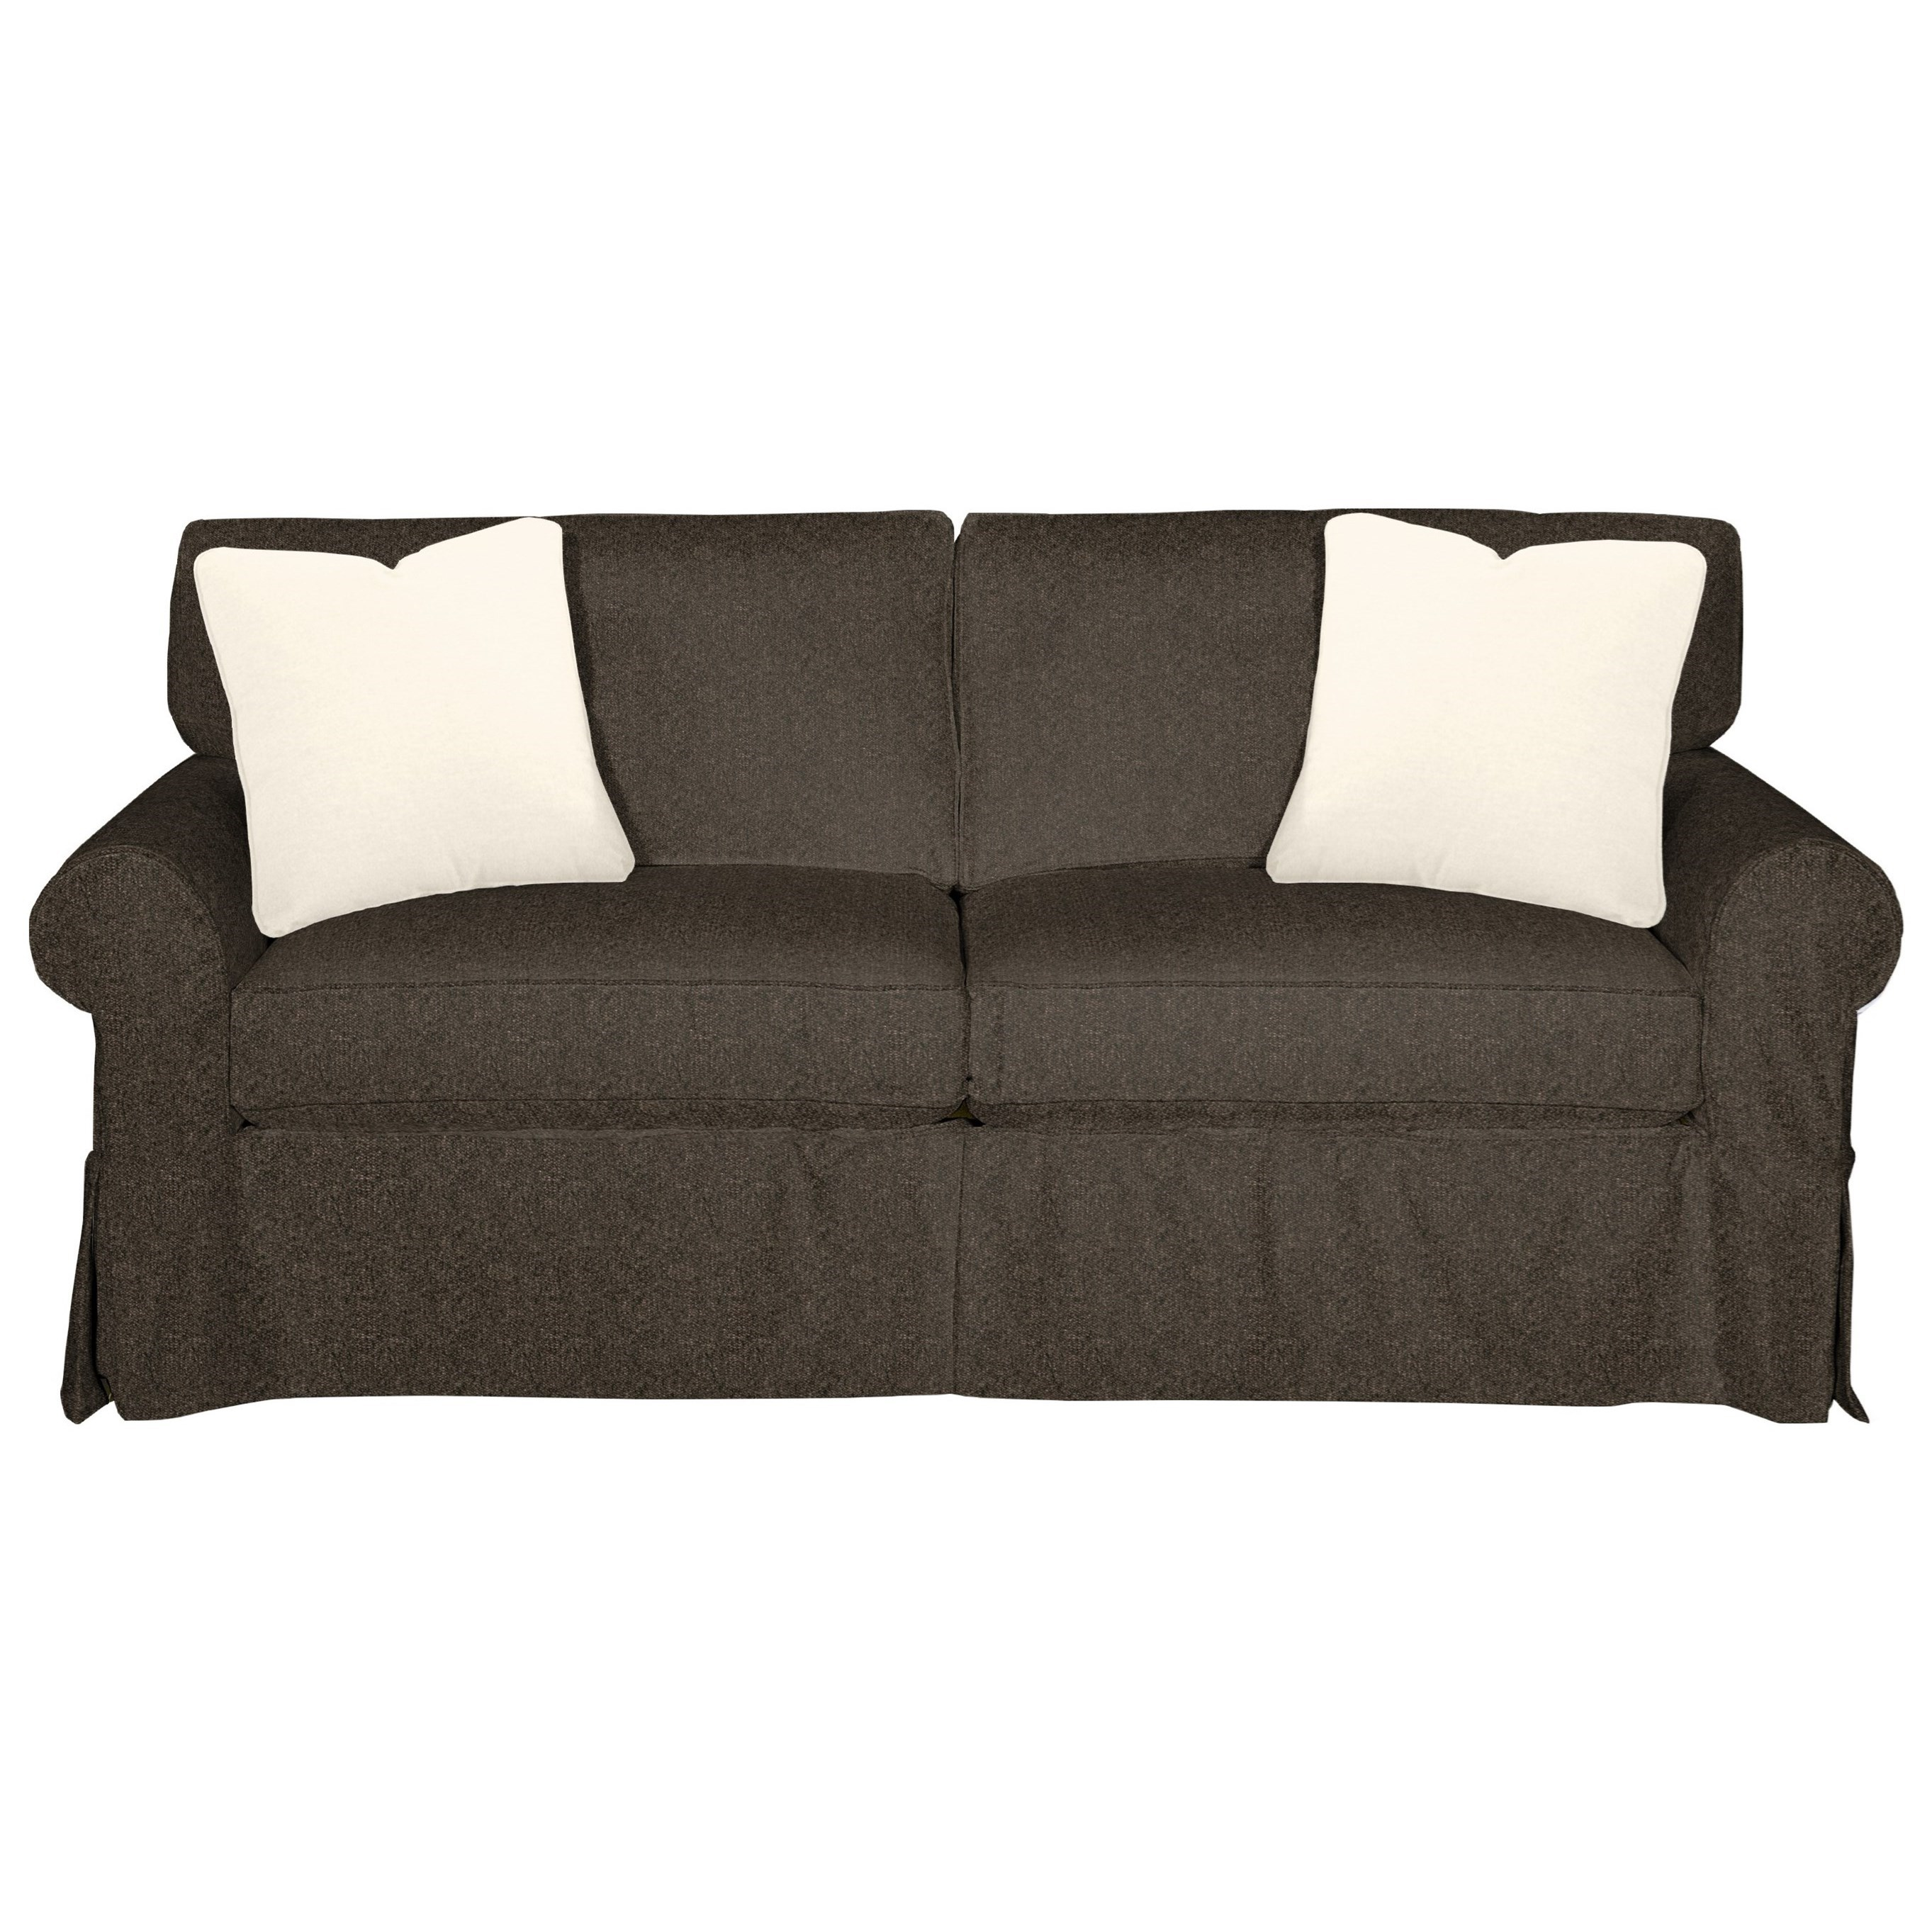 9228 Sleeper Sofa w/ Innerspring Mattress by Craftmaster at Powell's Furniture and Mattress